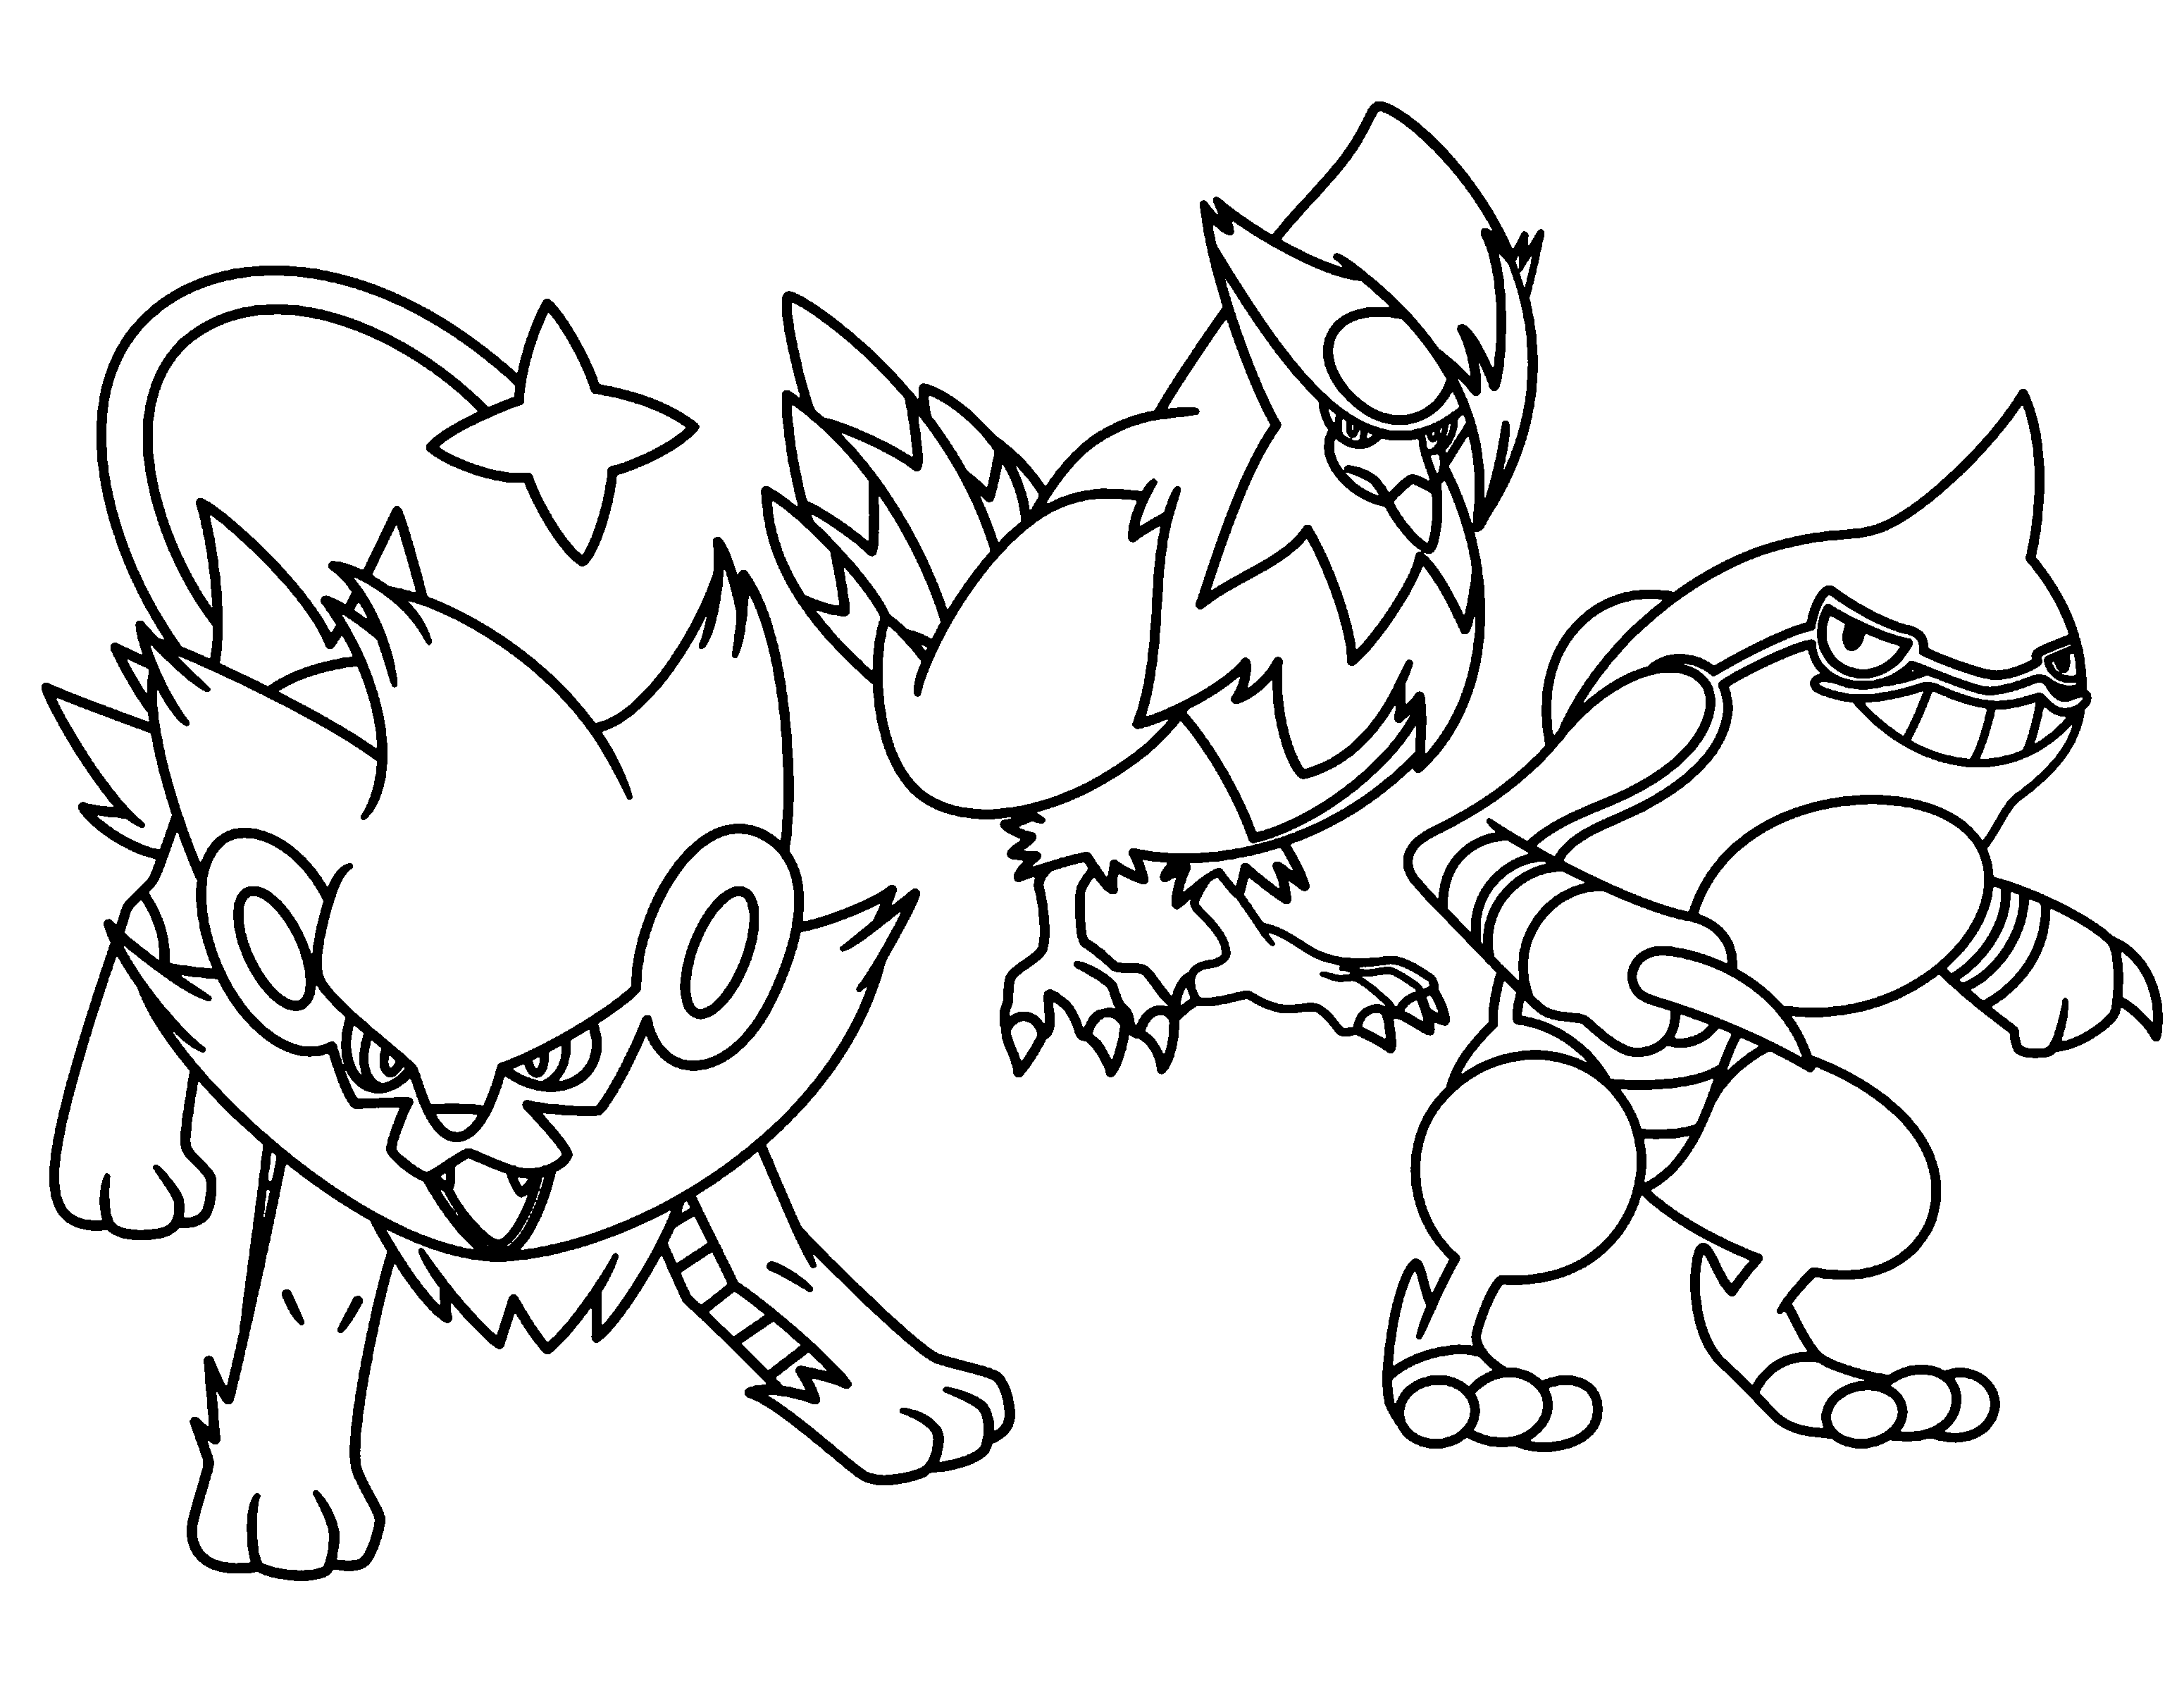 pokemon coloring sheets printable pokemon coloring pages join your favorite pokemon on an pokemon sheets printable coloring